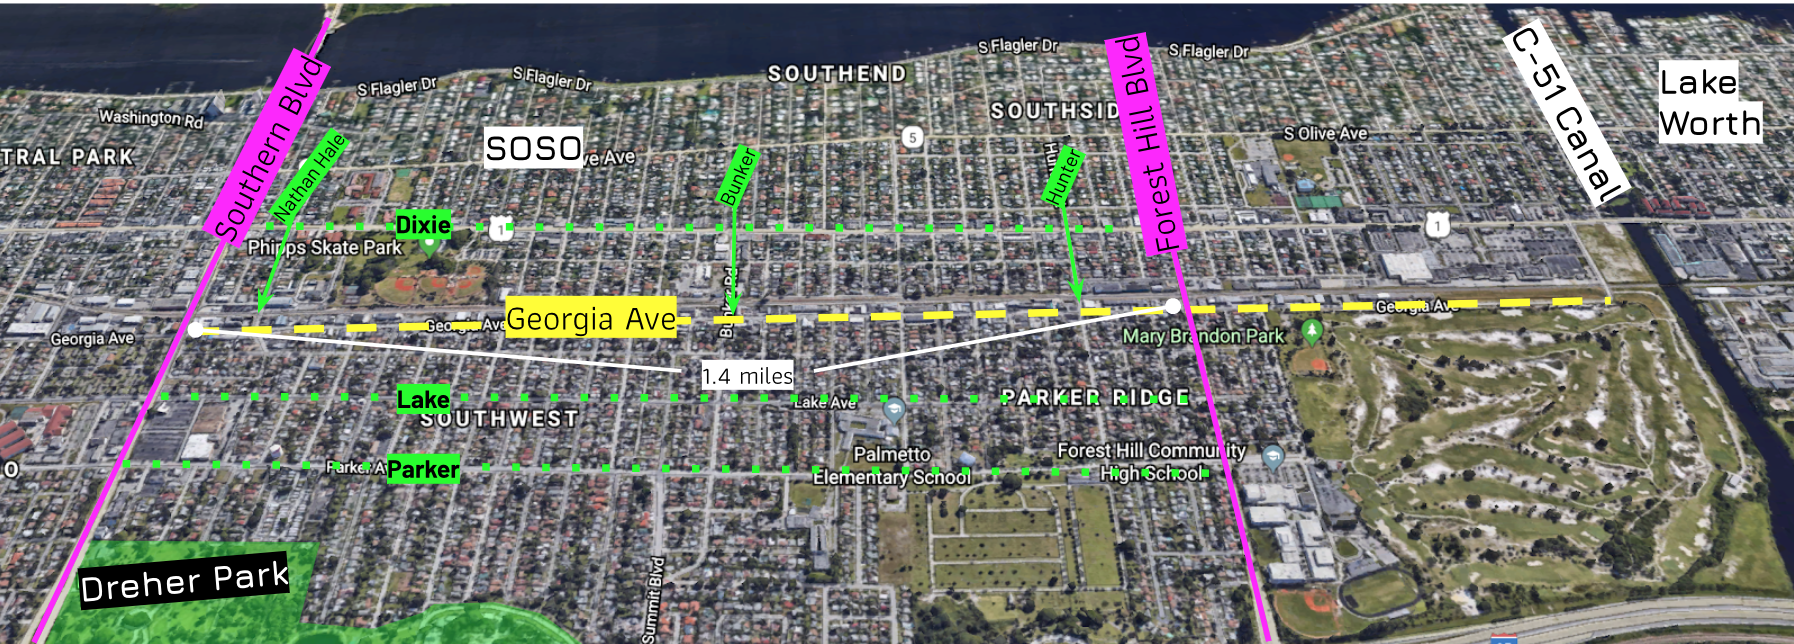 commercial real estate for sale west palm beach florida development